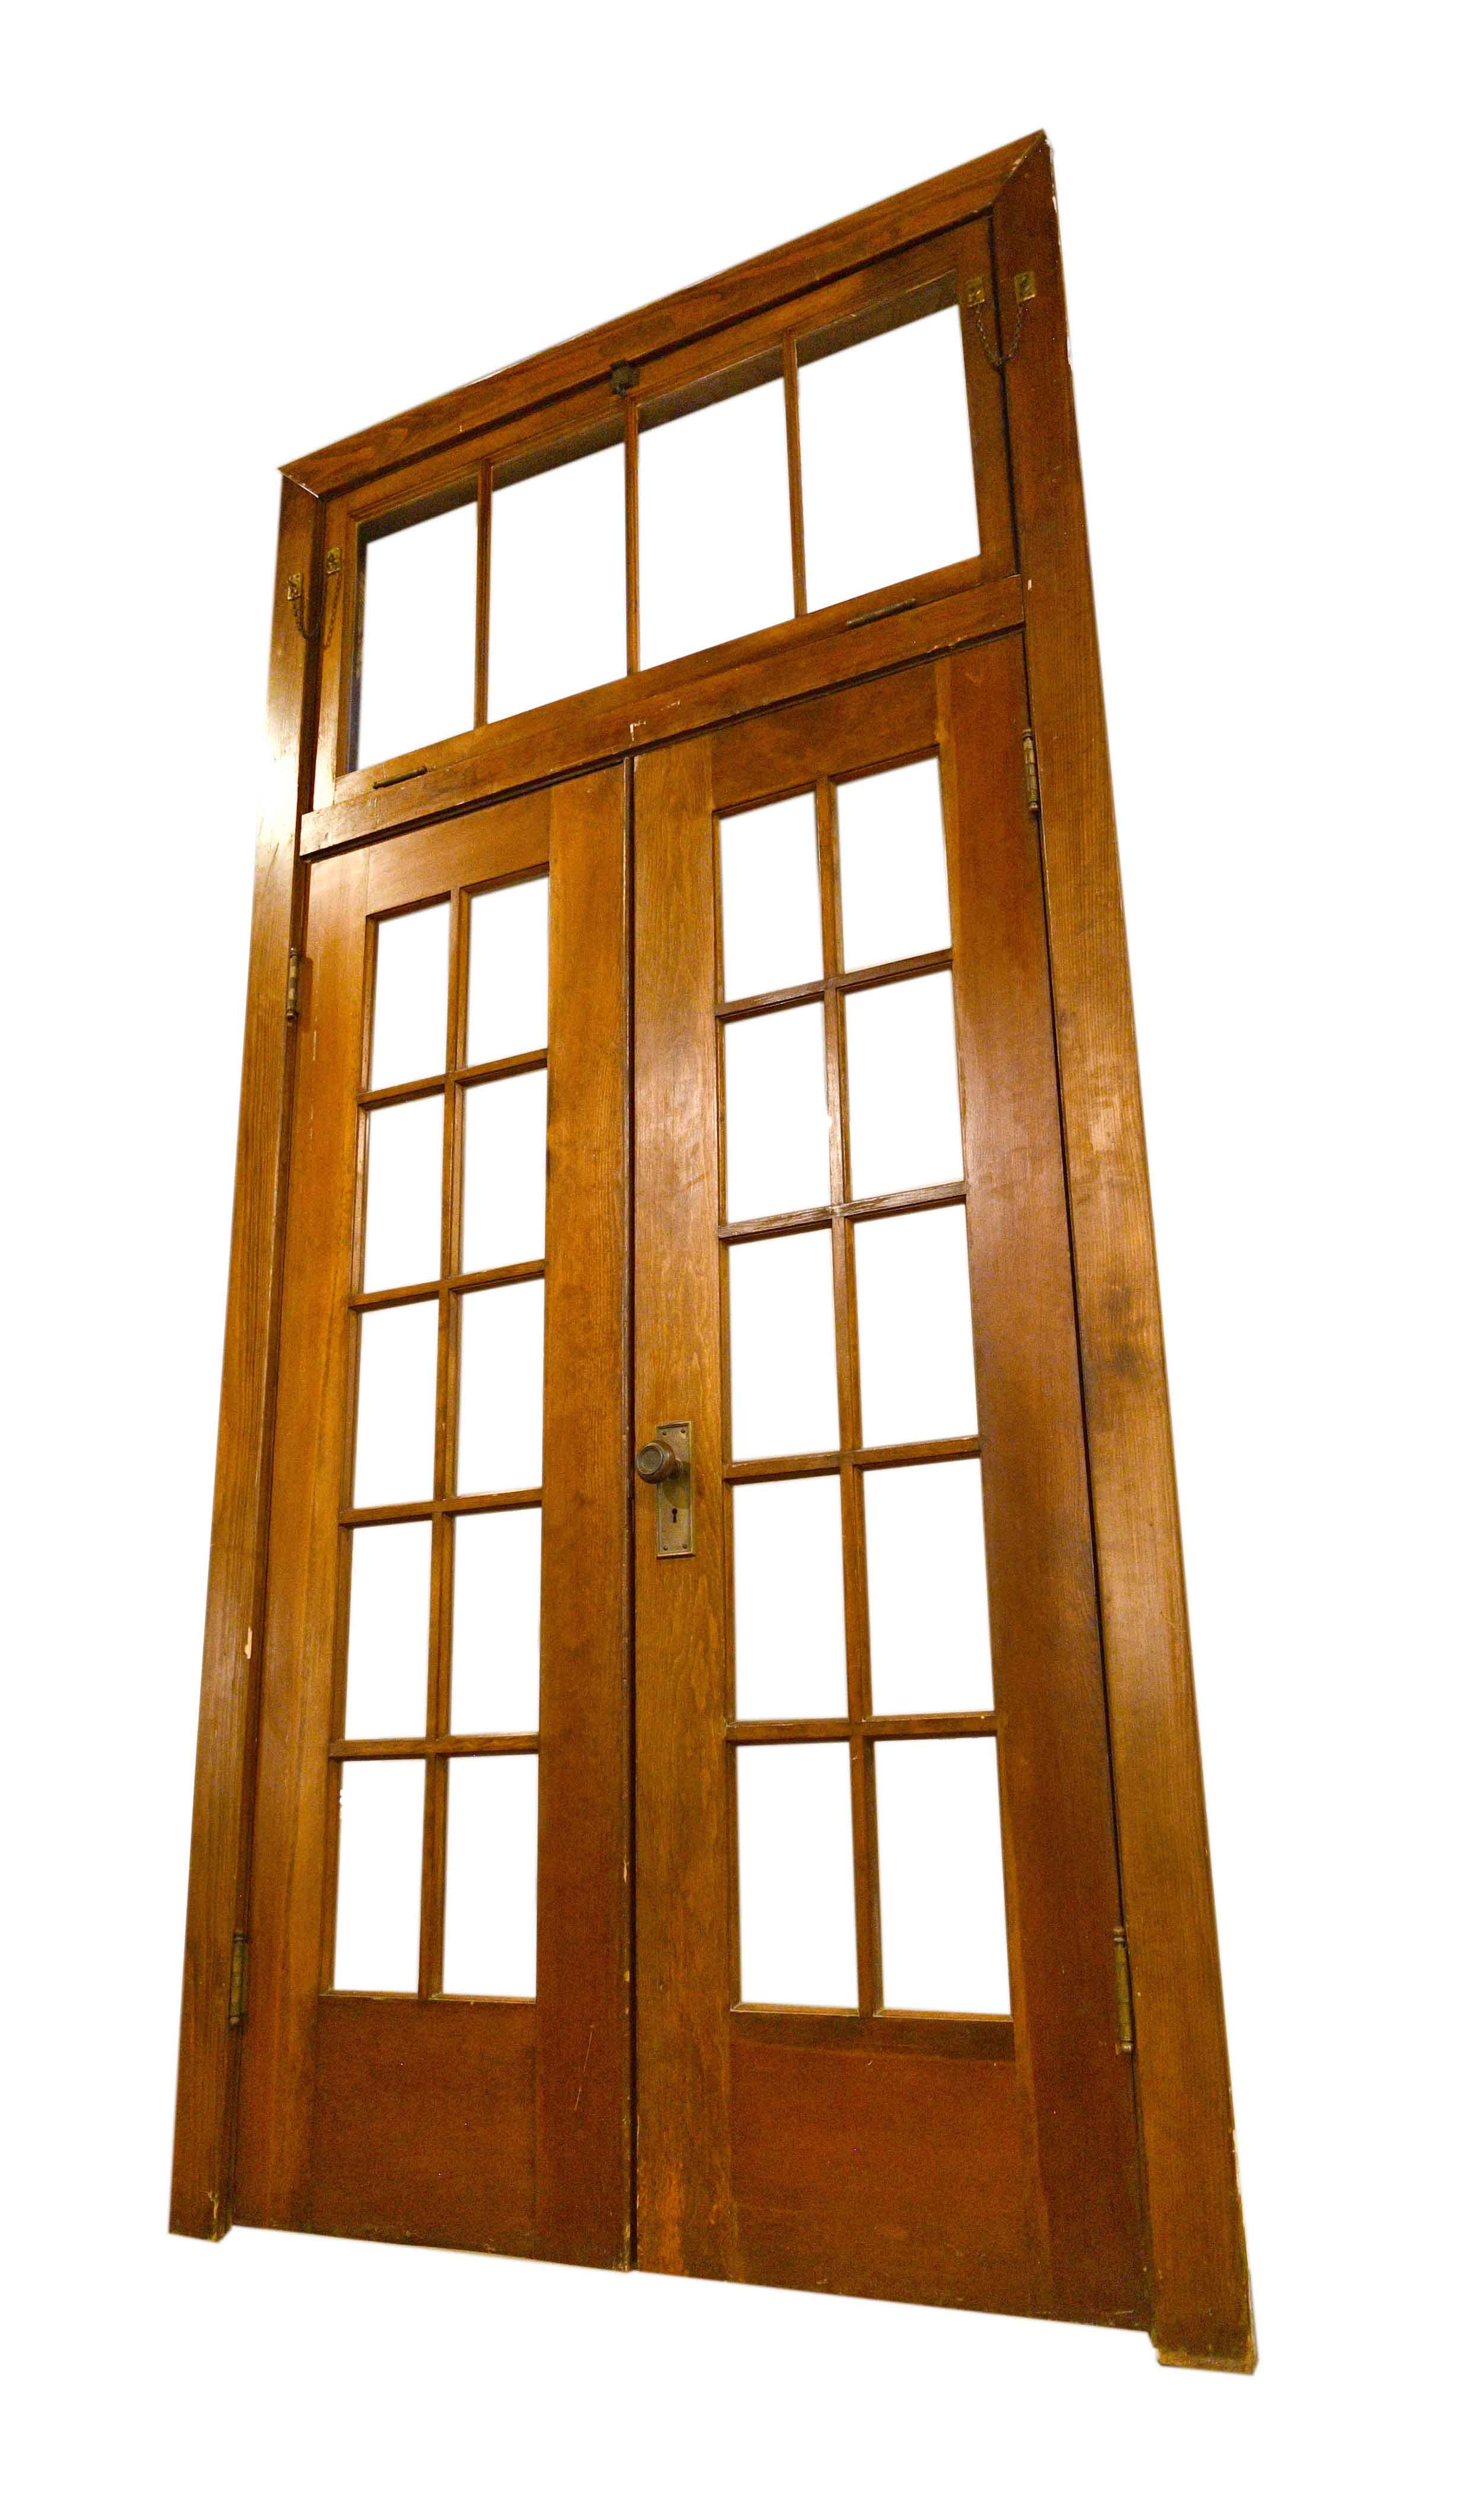 10-pane-glass-door-with-transom-2.jpg